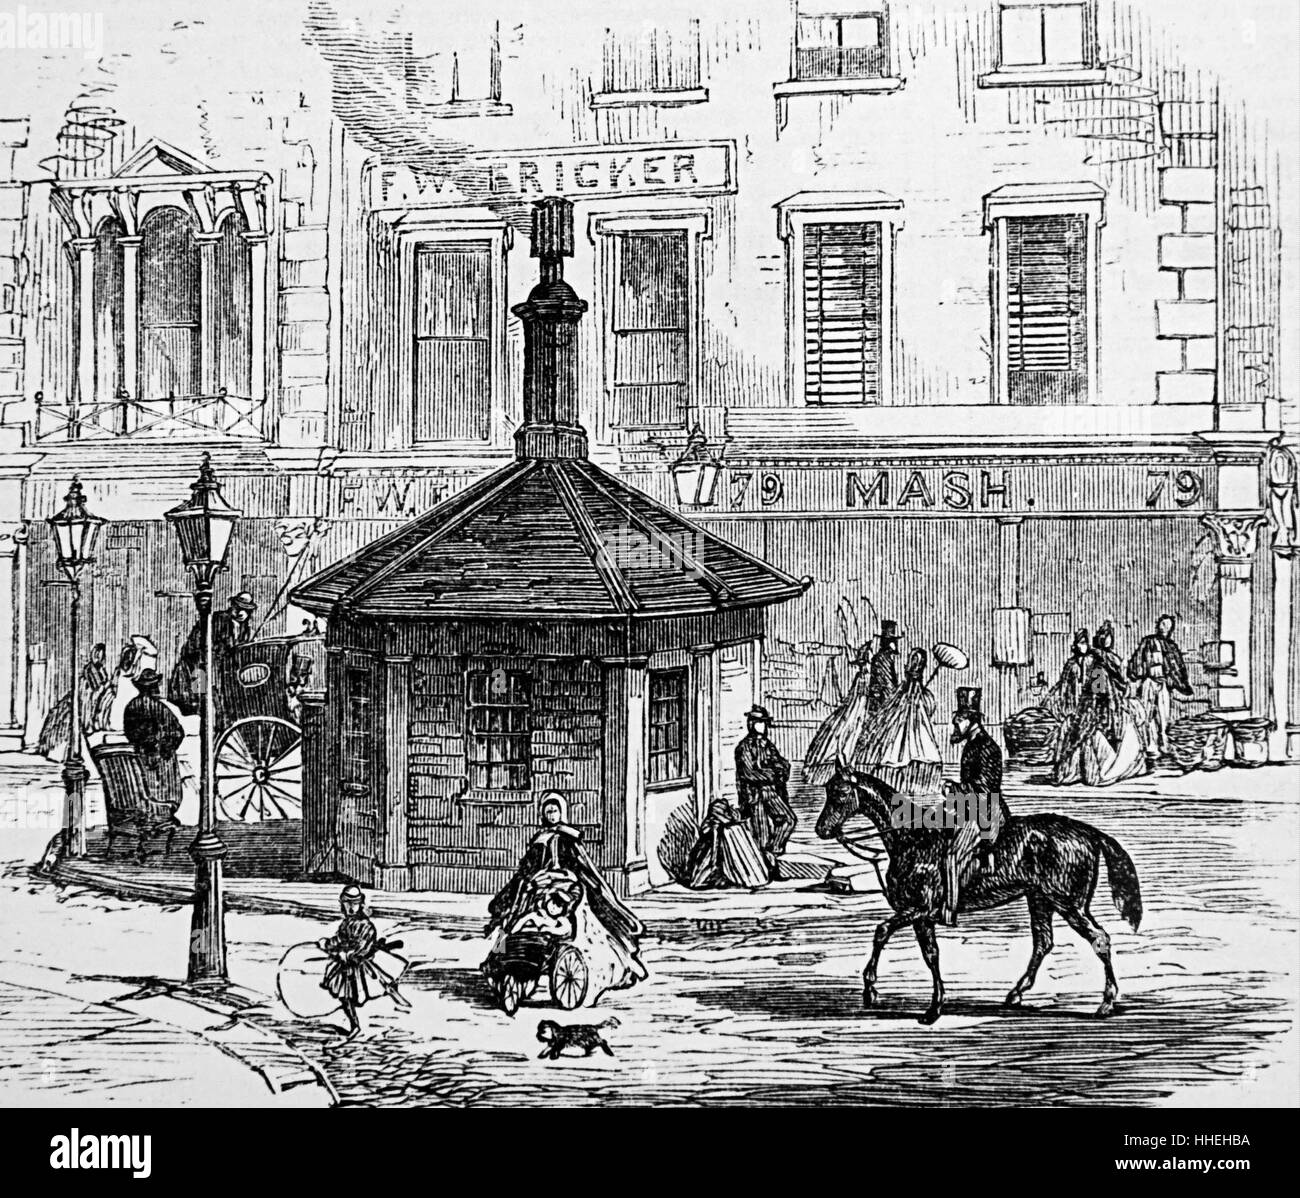 Engraving depicting the Notting Hill Turnpike gate shortly before demolition. Dated 19th Century - Stock Image